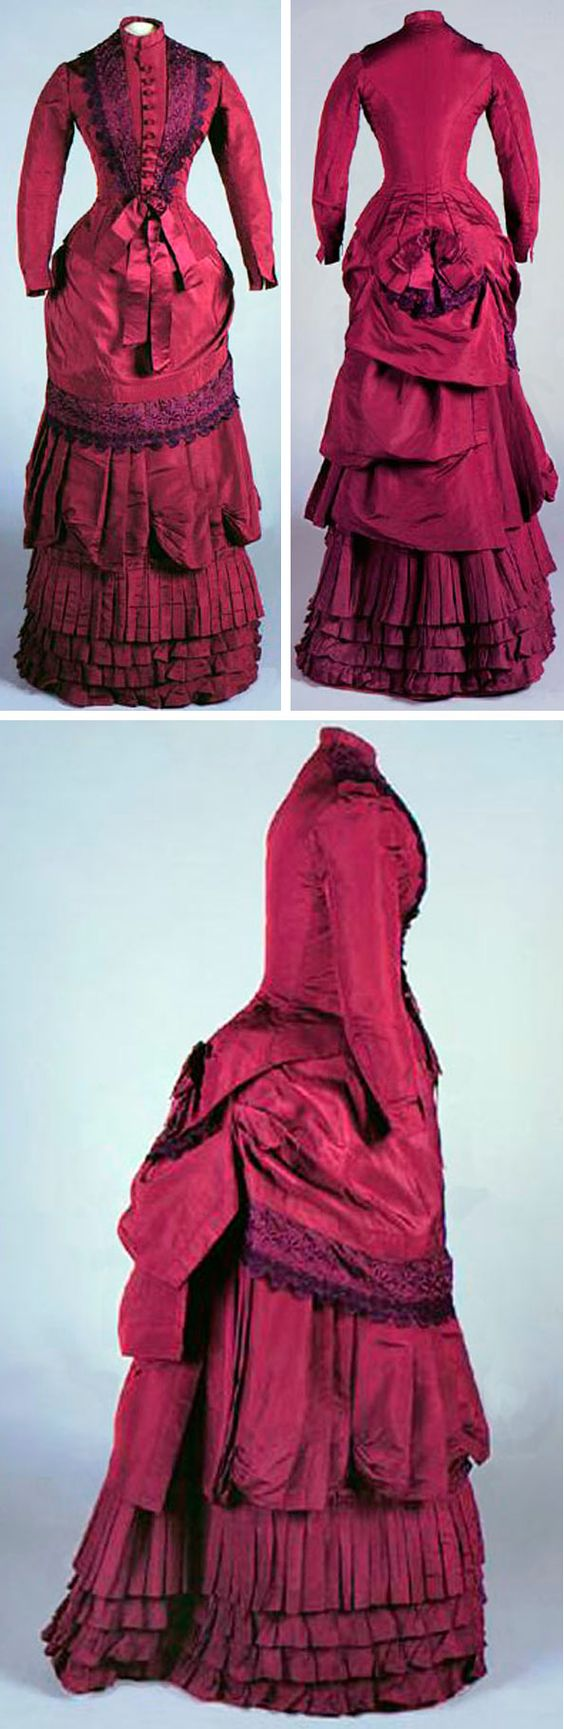 Day dress, c.1881. Plum silk faille and light brown polished cotton (lining), machine- and hand-stitched, with machine-embroidered eyelet lace, satin ribbon, silk thread-covered wooden (probably) buttons, and wool tape. Connecticut Historical Society http://emuseum.chs.org/emuseum/view/objects/asitem/search$0040/1/title-asc?t:state:flow=15fdc8ad-7e27-40f7-83c4-e6f17d701e55